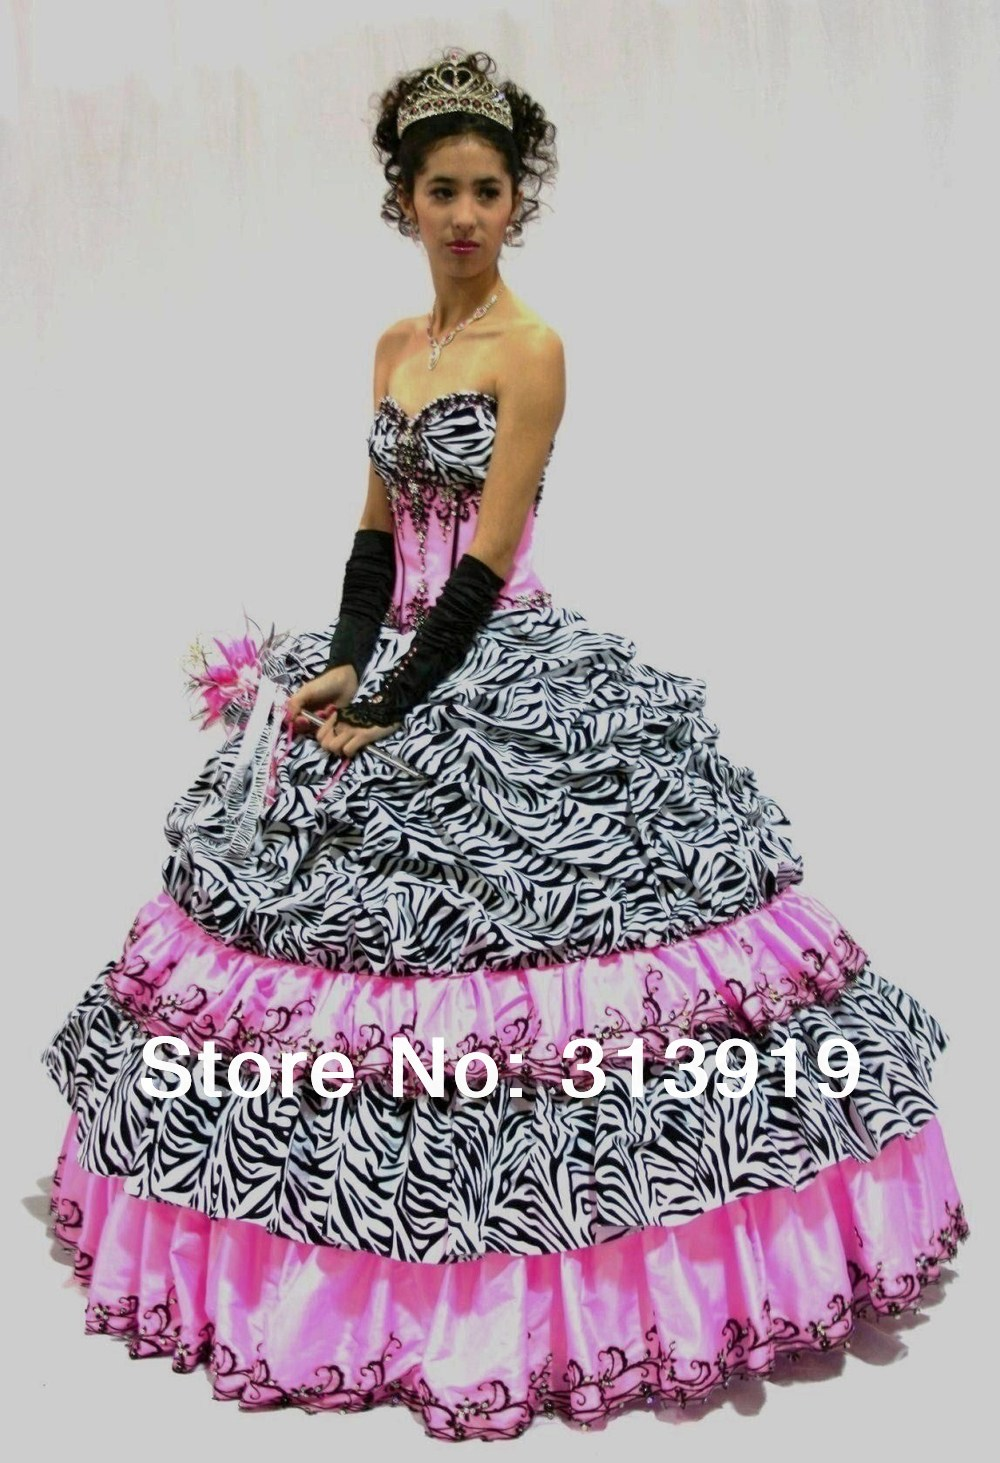 Zebra Striped Prom Dresses 33